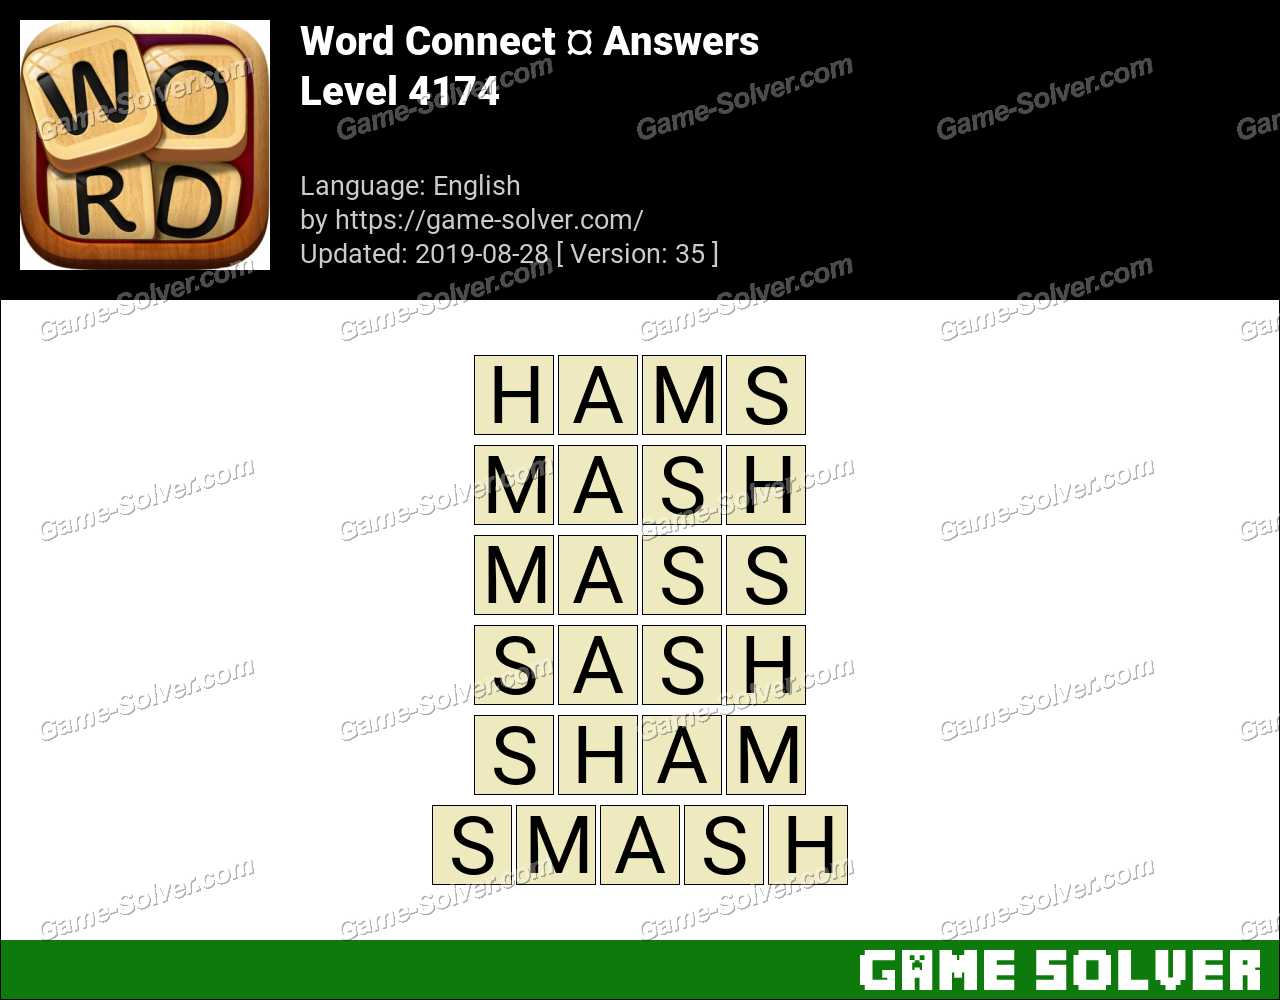 Word Connect Level 4174 Answers